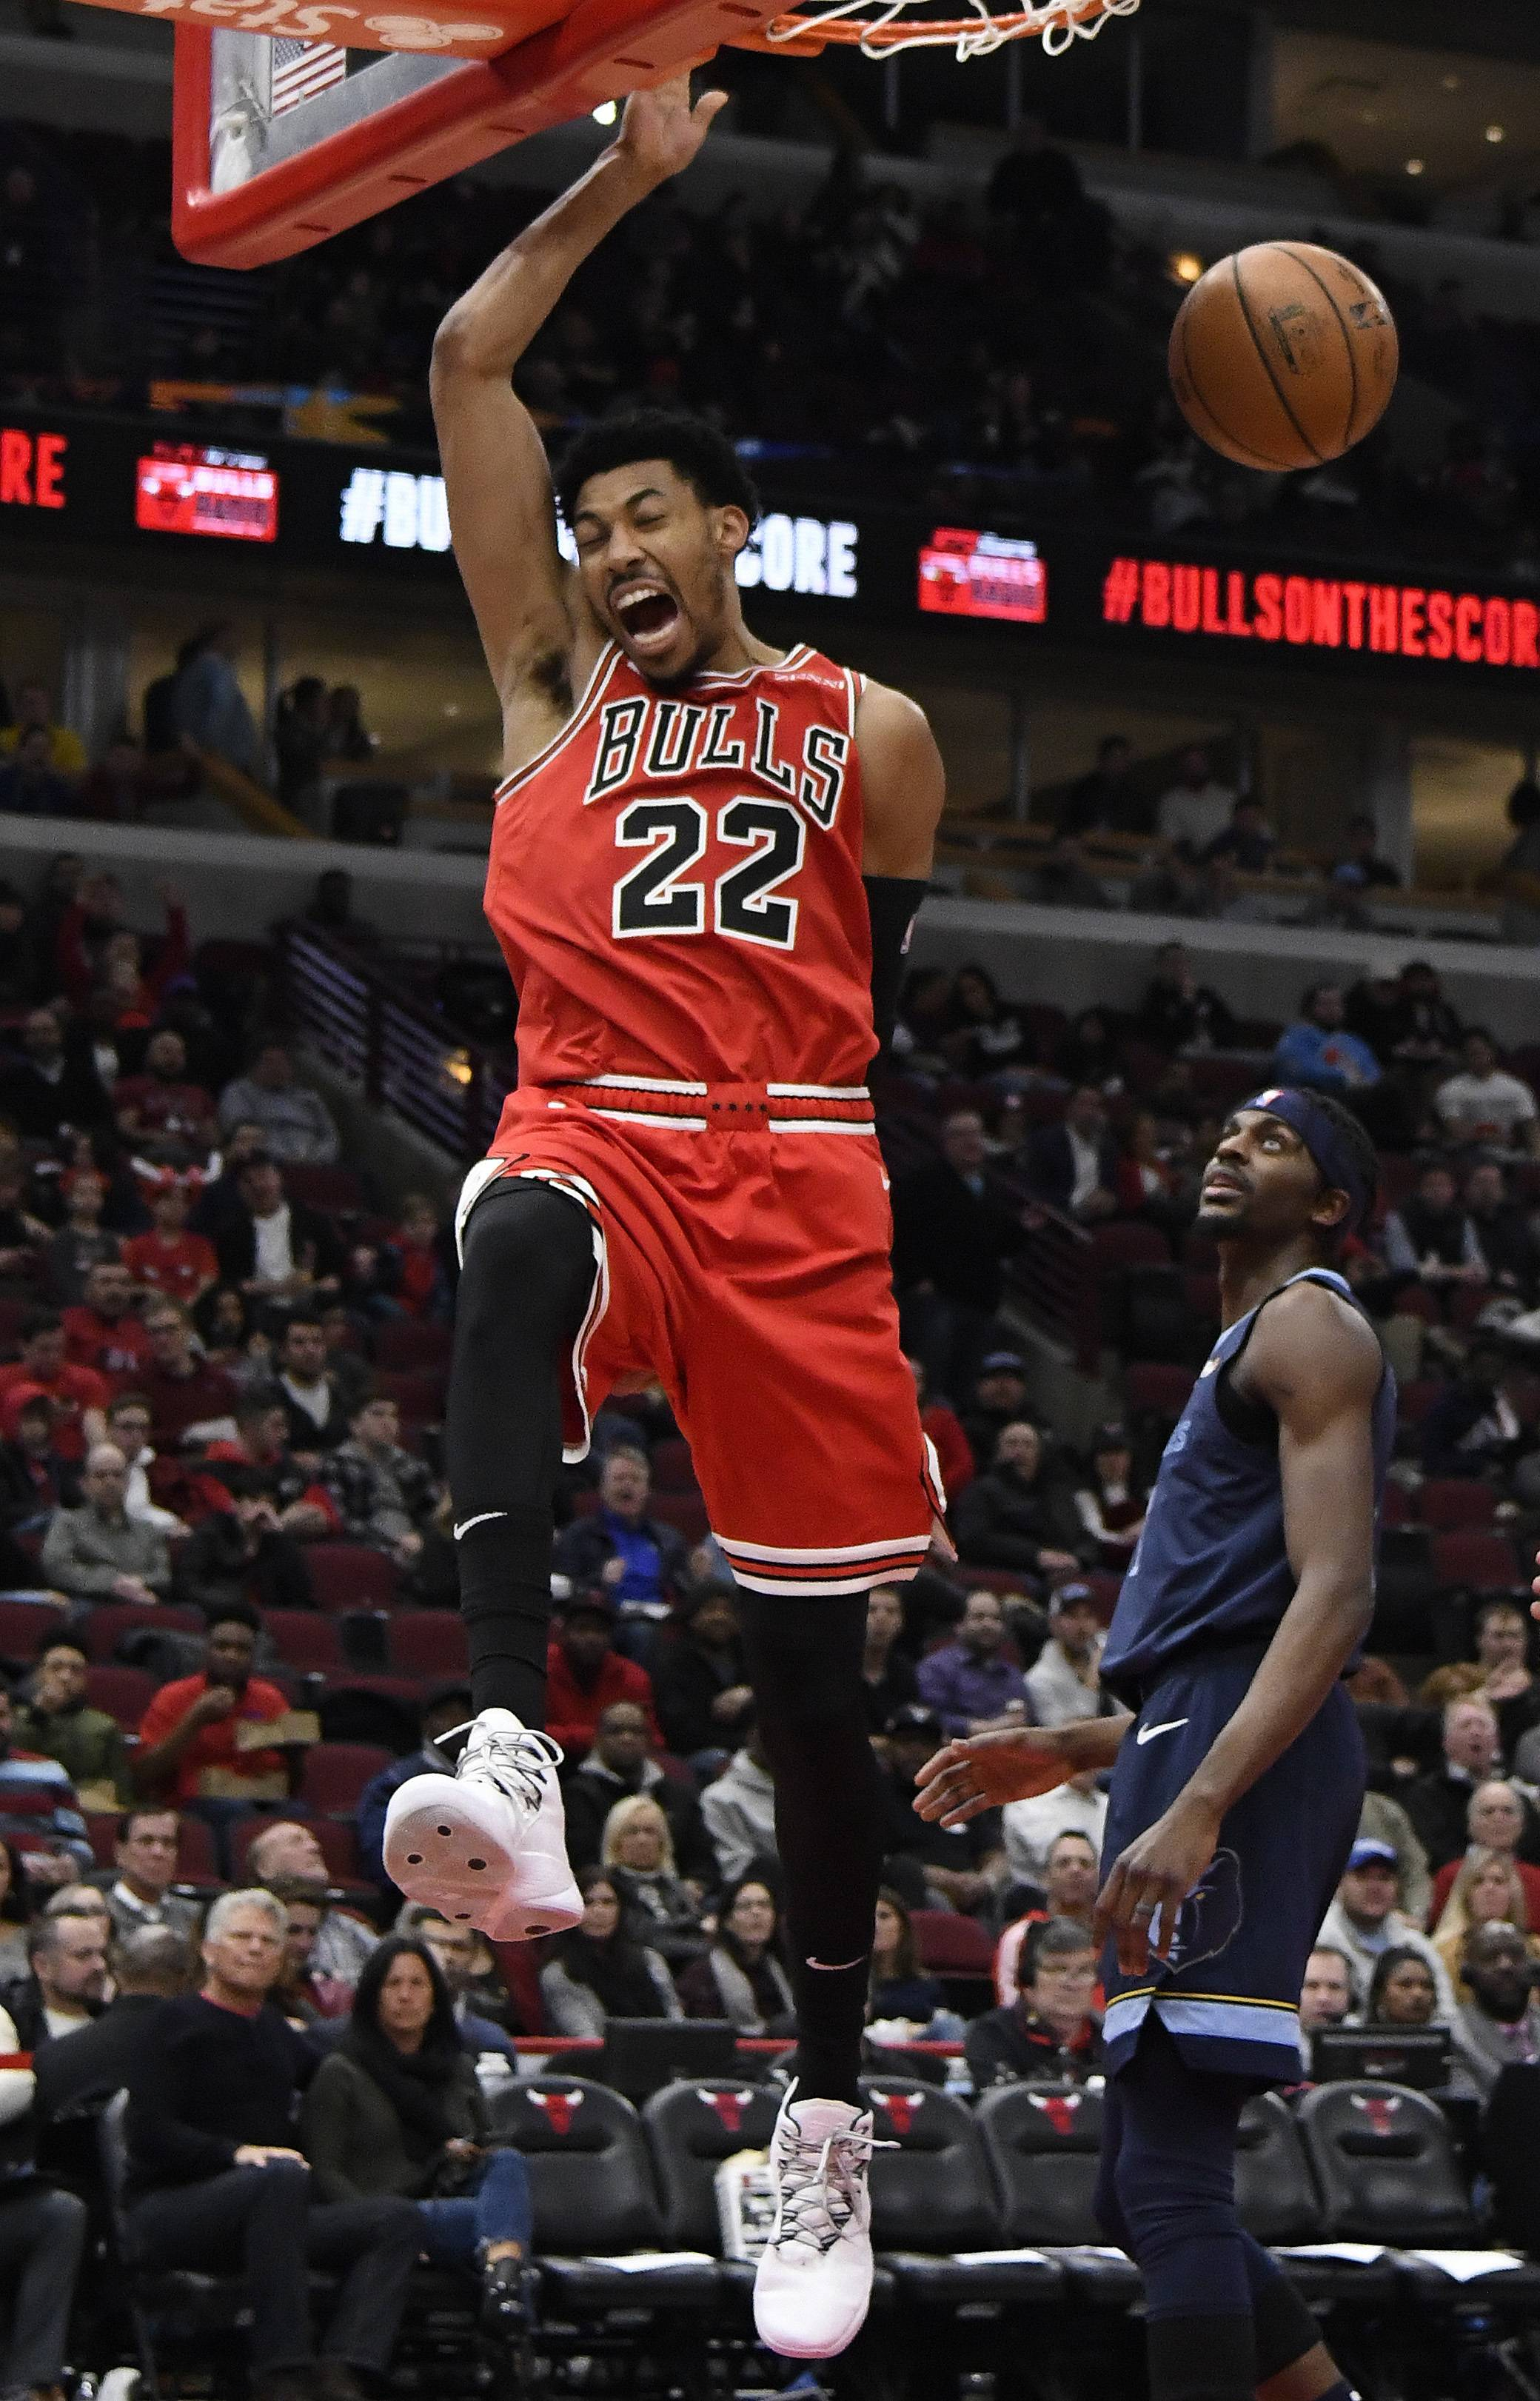 Porter scores career-high 37, Bulls snap home losing streak